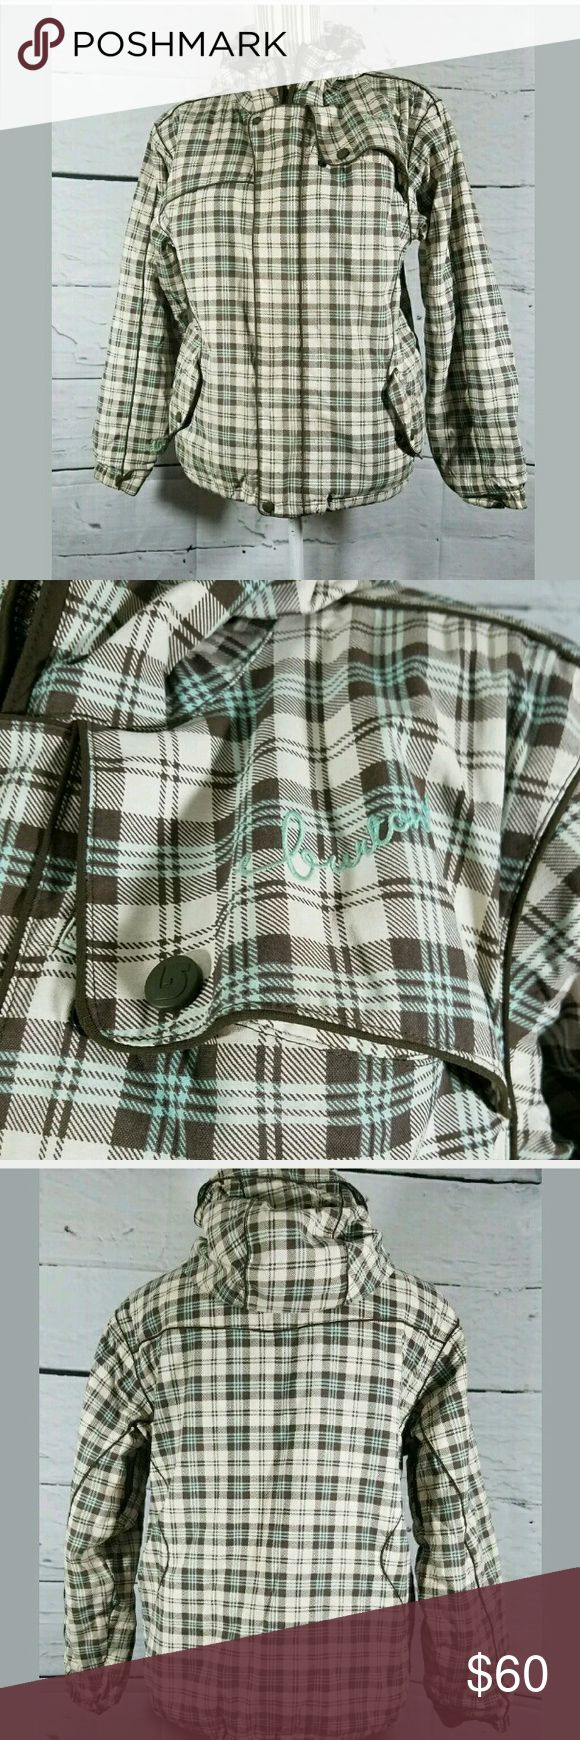 Women's Burton Ski Jacket Coat Plaid Size small, but tag ripped out.  Coat in excellent used condition.   21 inches pit to pit.  24 inches long.   LB Burton Jackets & Coats Puffers